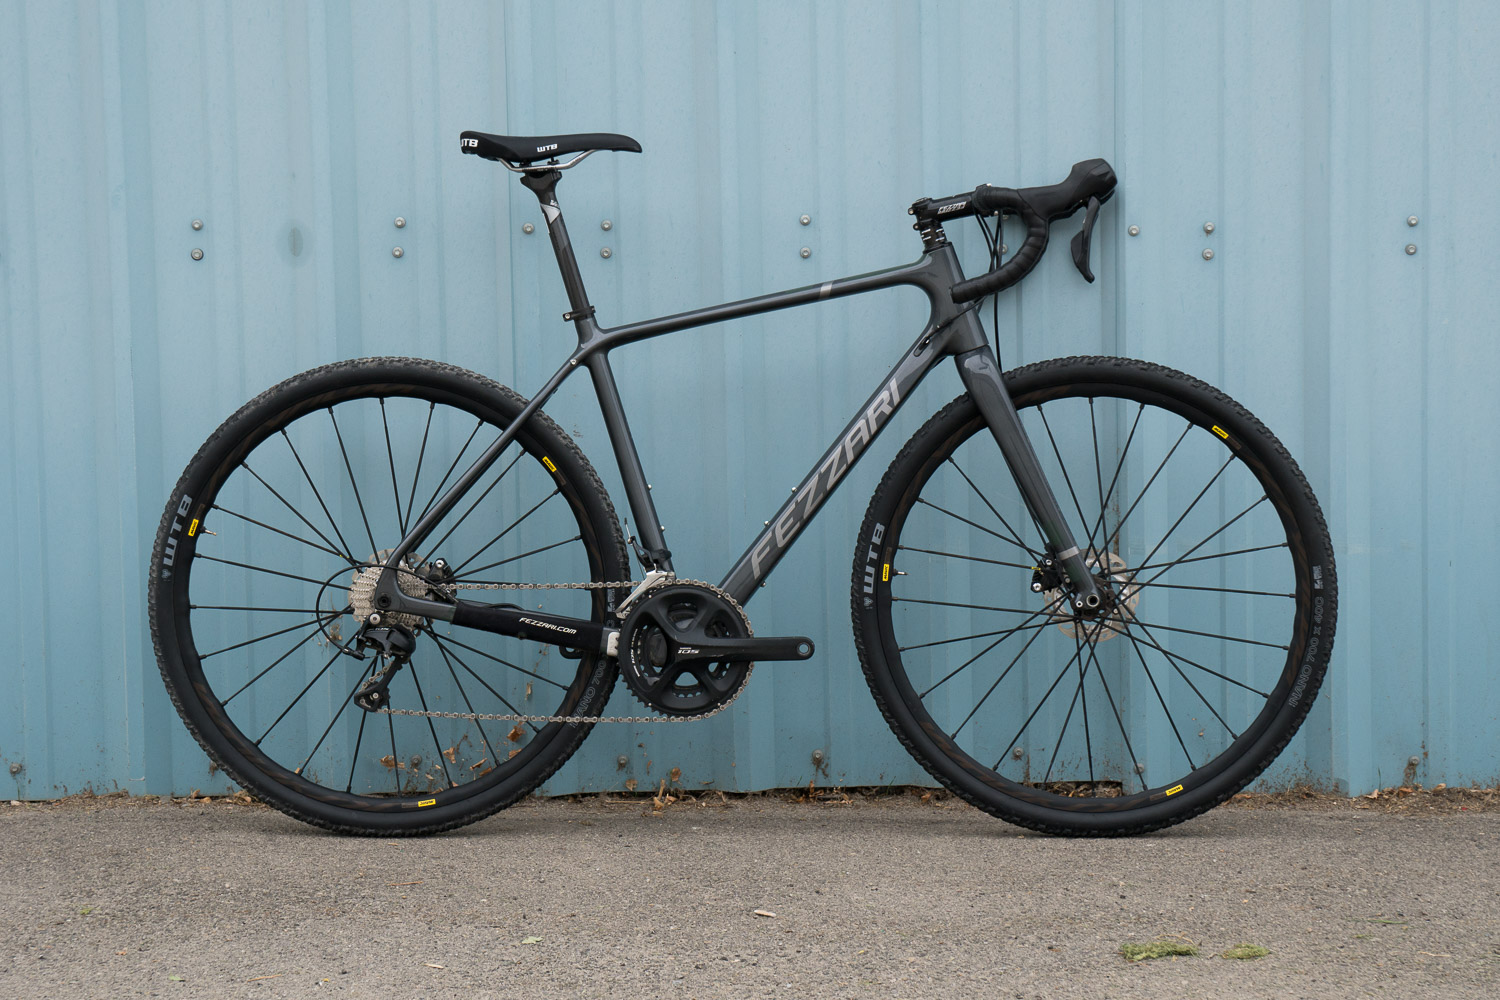 Spec on the final production model will include a Shimano Ultegra drivetrain. Price is set at a reasonable $3499.